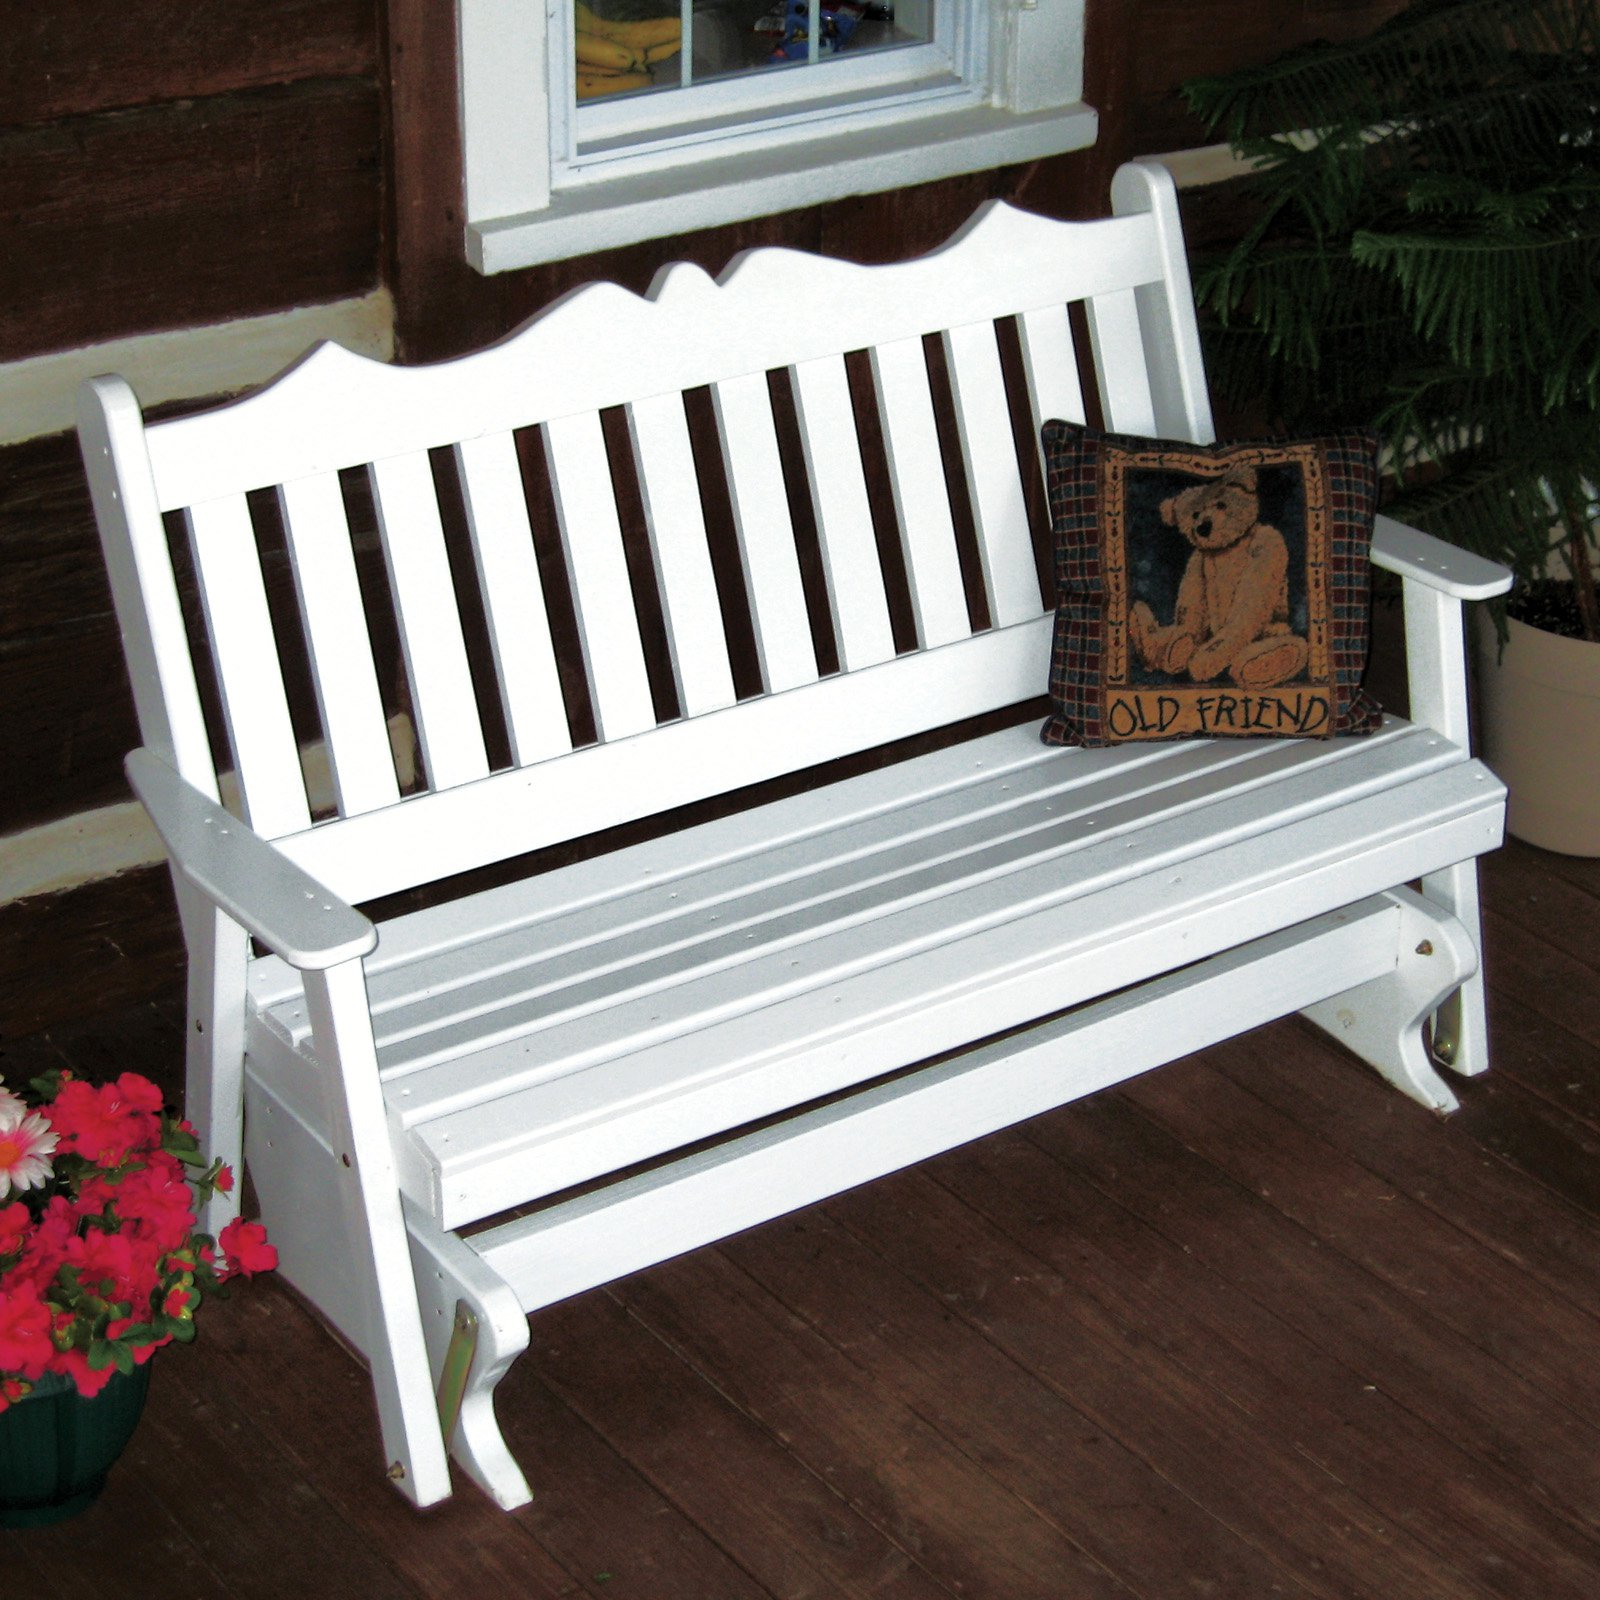 A & L Furniture Yellow Pine Royal English Deluxe Outdoor Bench Glider